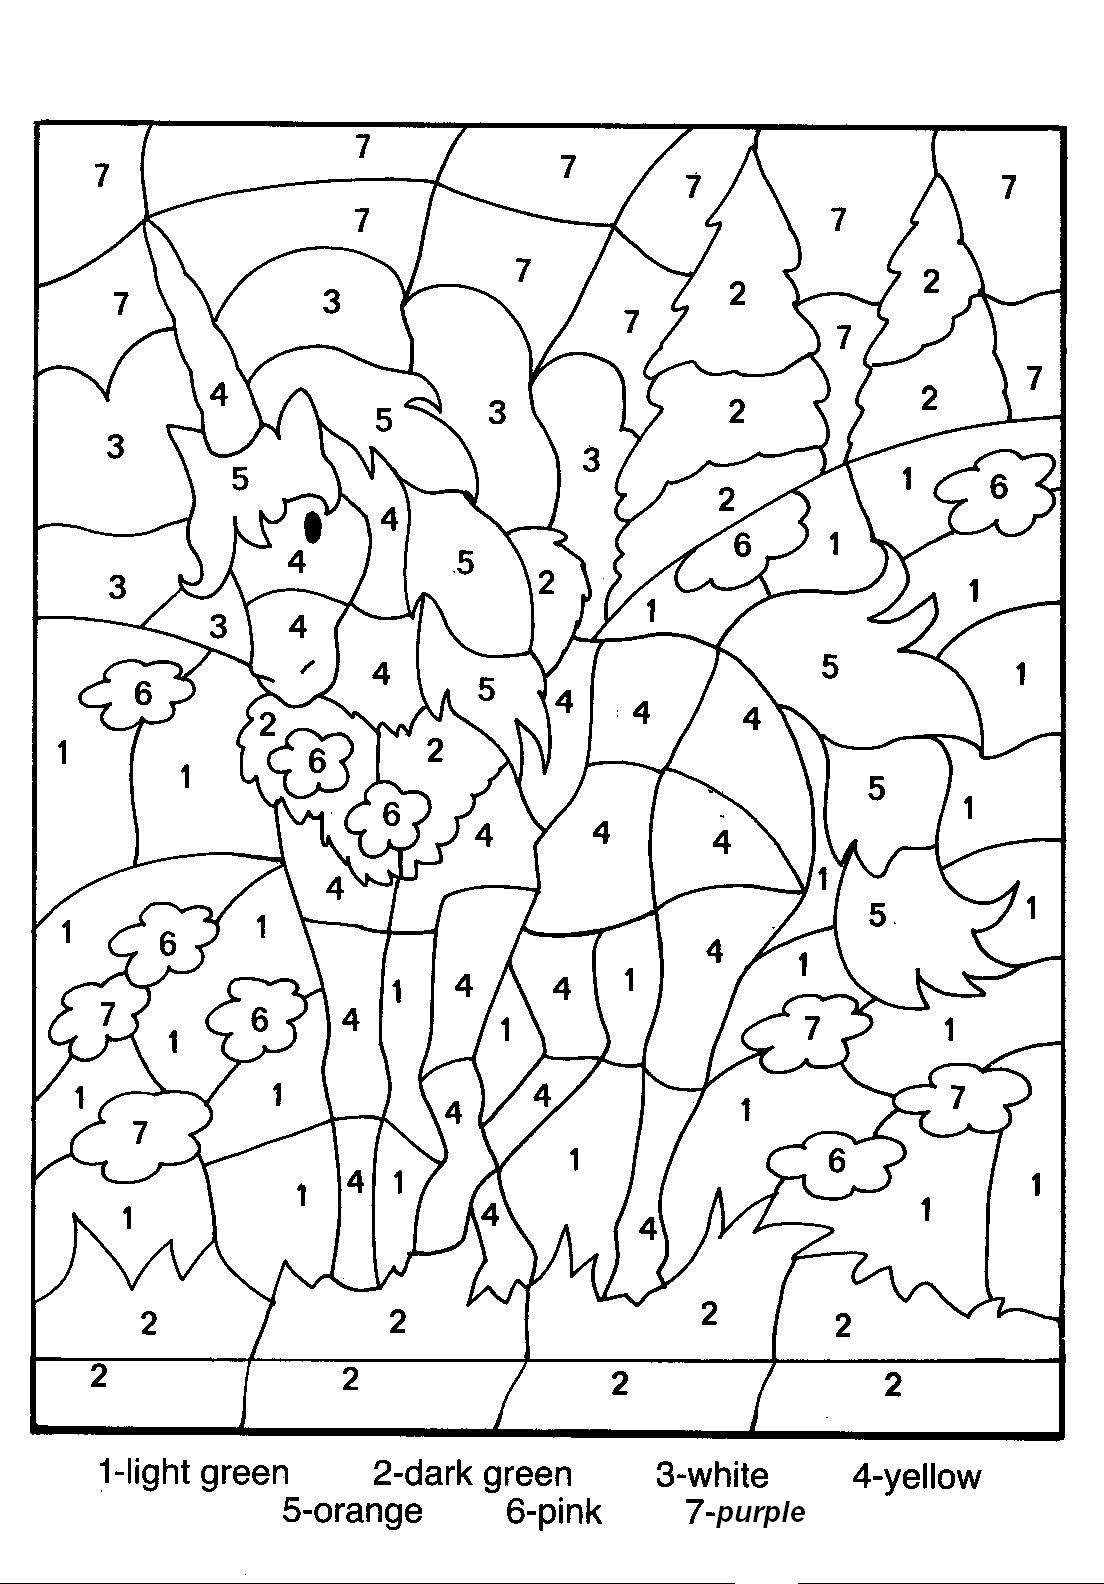 colouring by numbers worksheets difficult color by number printables coloring home by worksheets colouring numbers